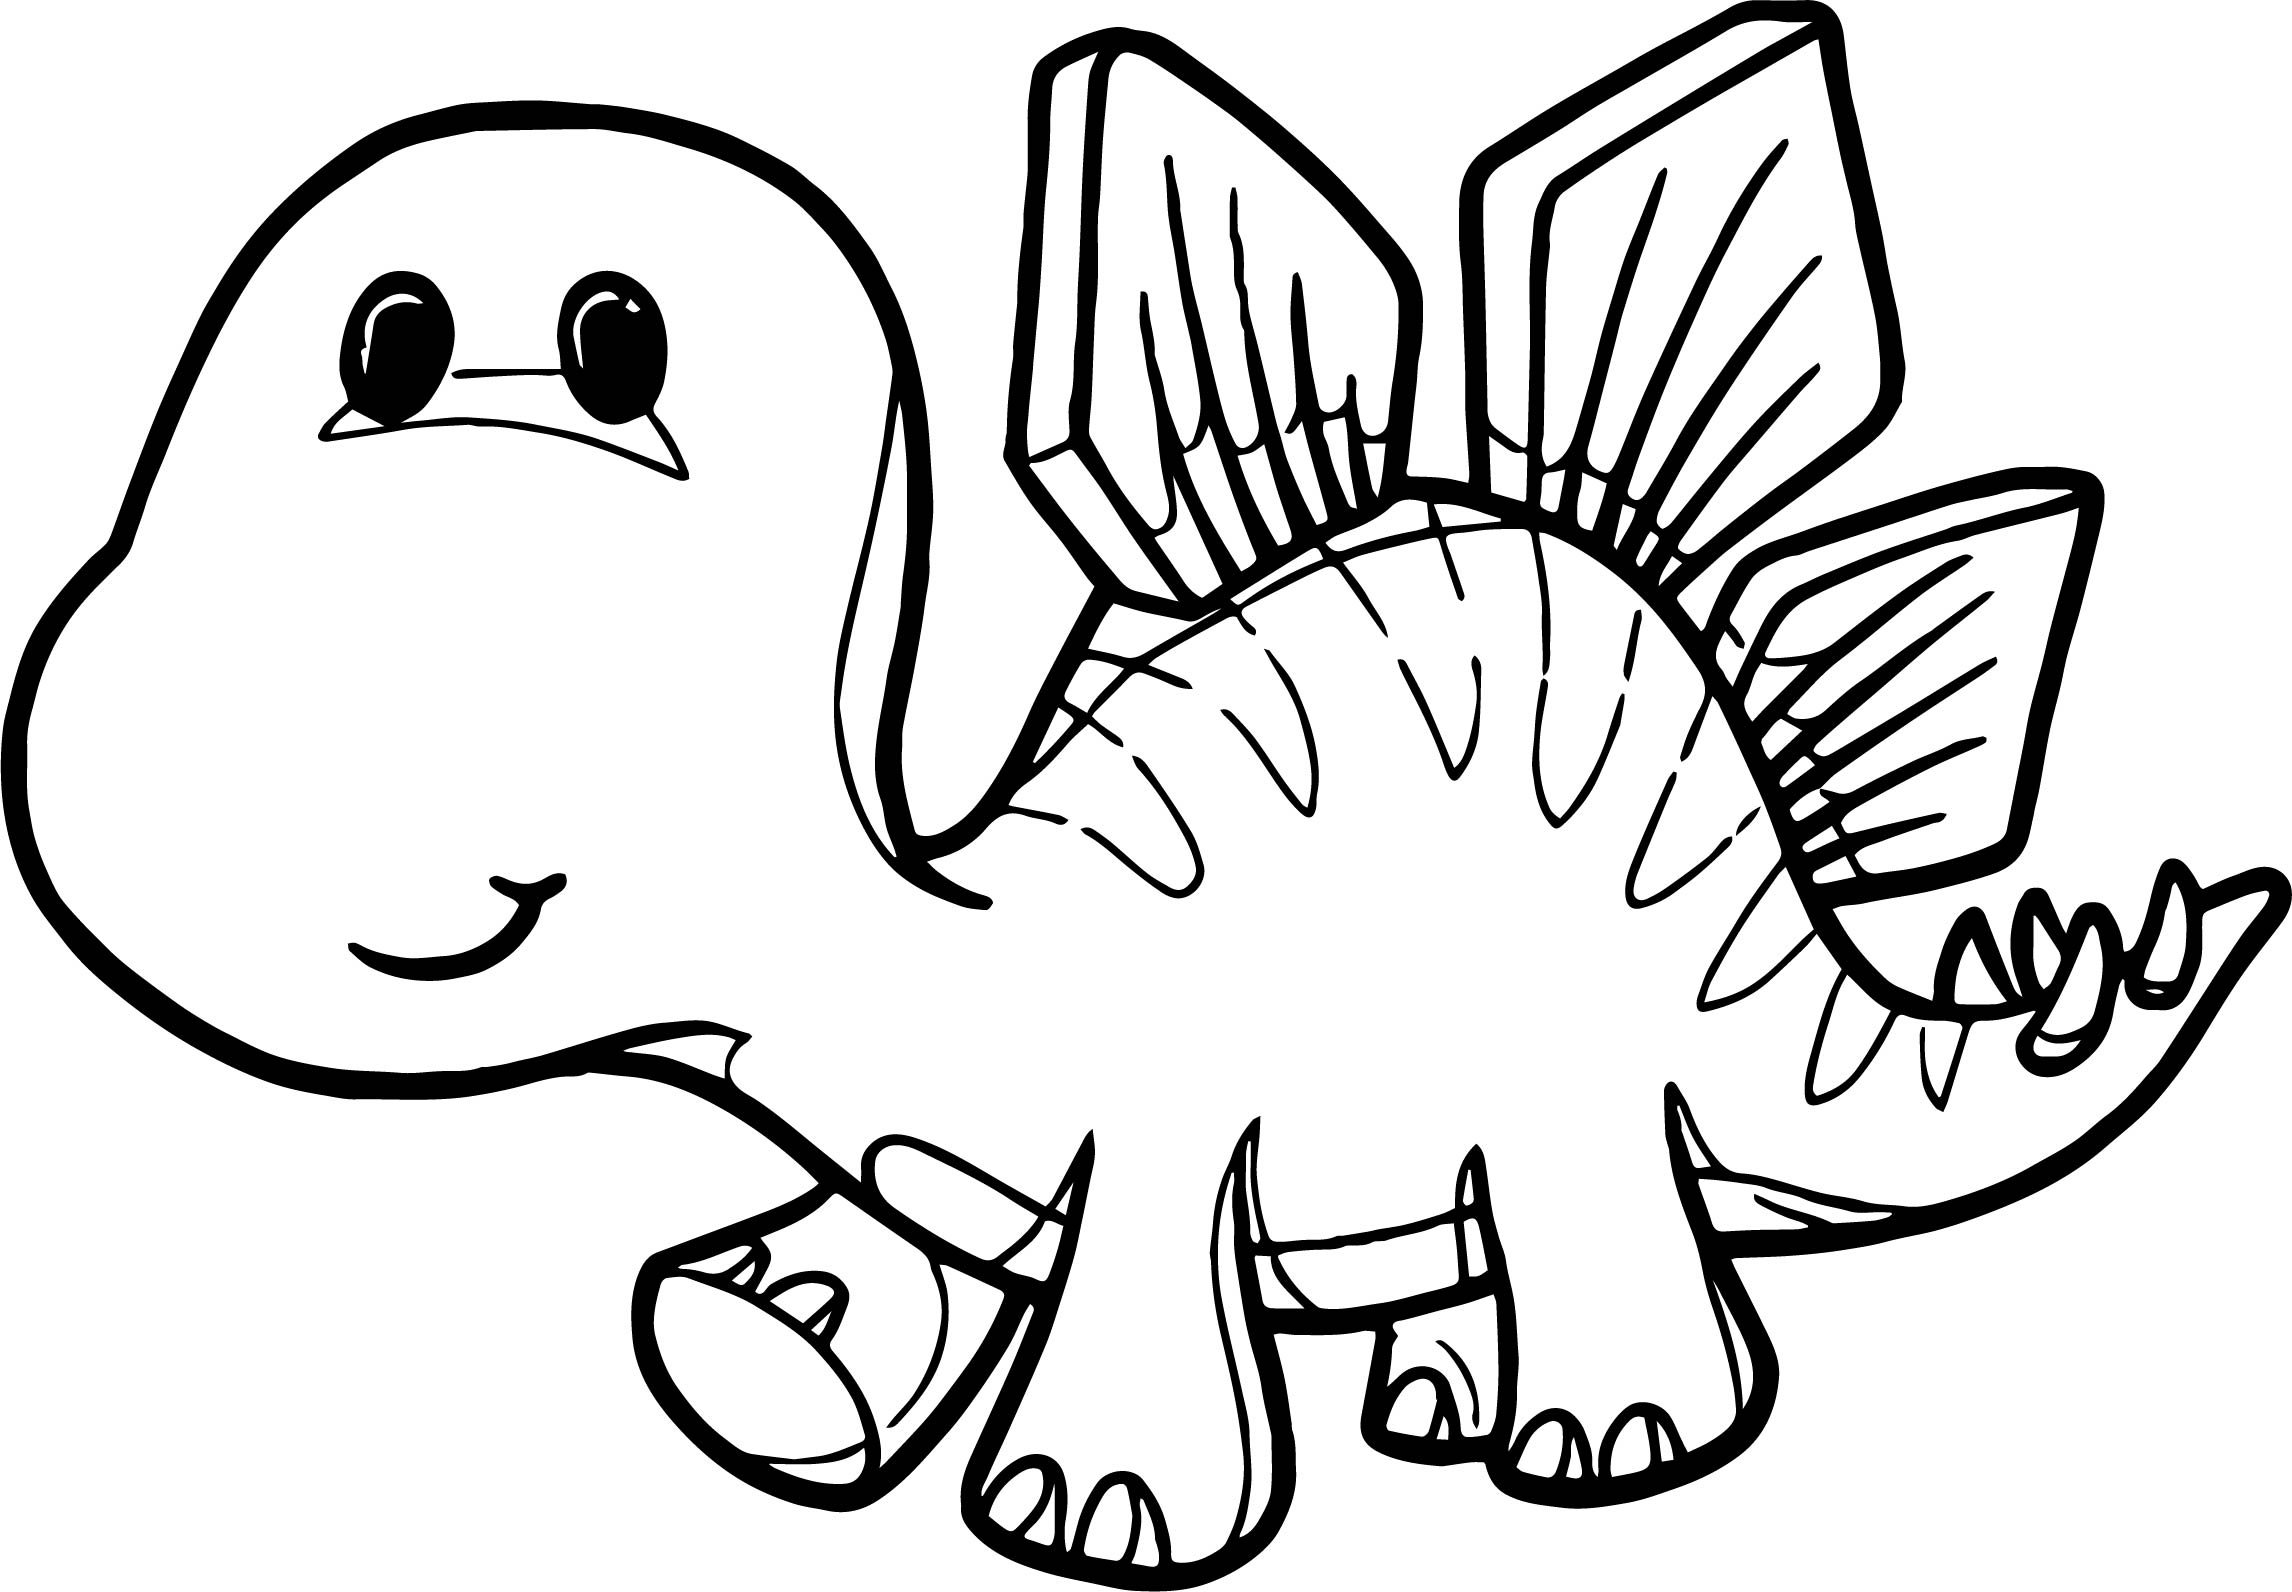 cartoon dinosaur coloring pictures cute little triceratops dinosaur coloring pages for kids pictures coloring dinosaur cartoon